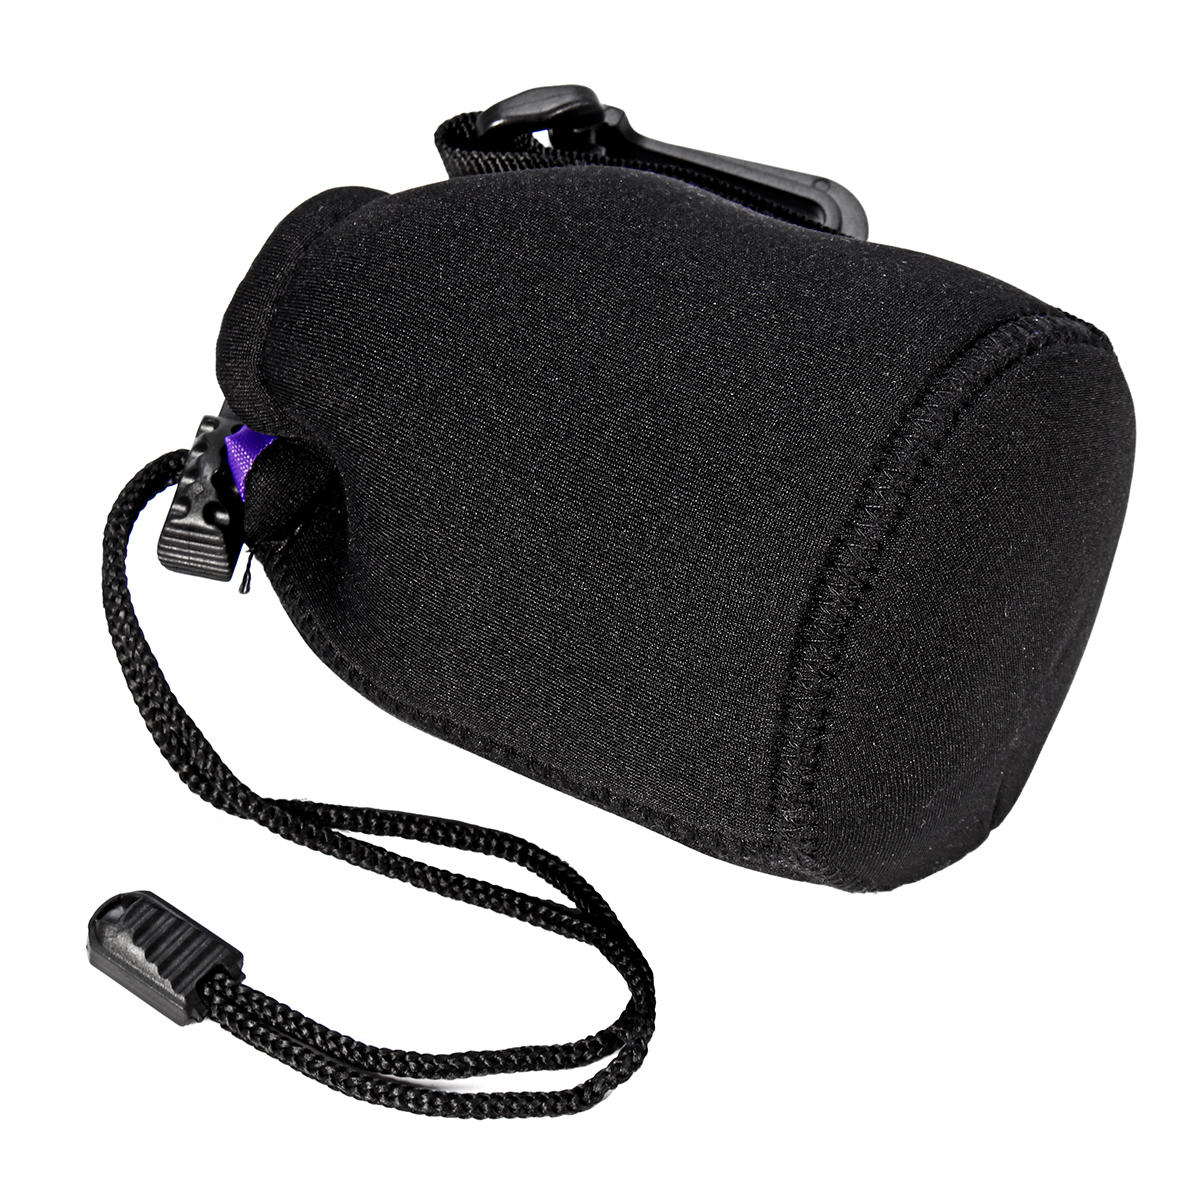 Neoprene Portable Photo Bag Case Protective Pouch Storage For DSLR Camera Lenses